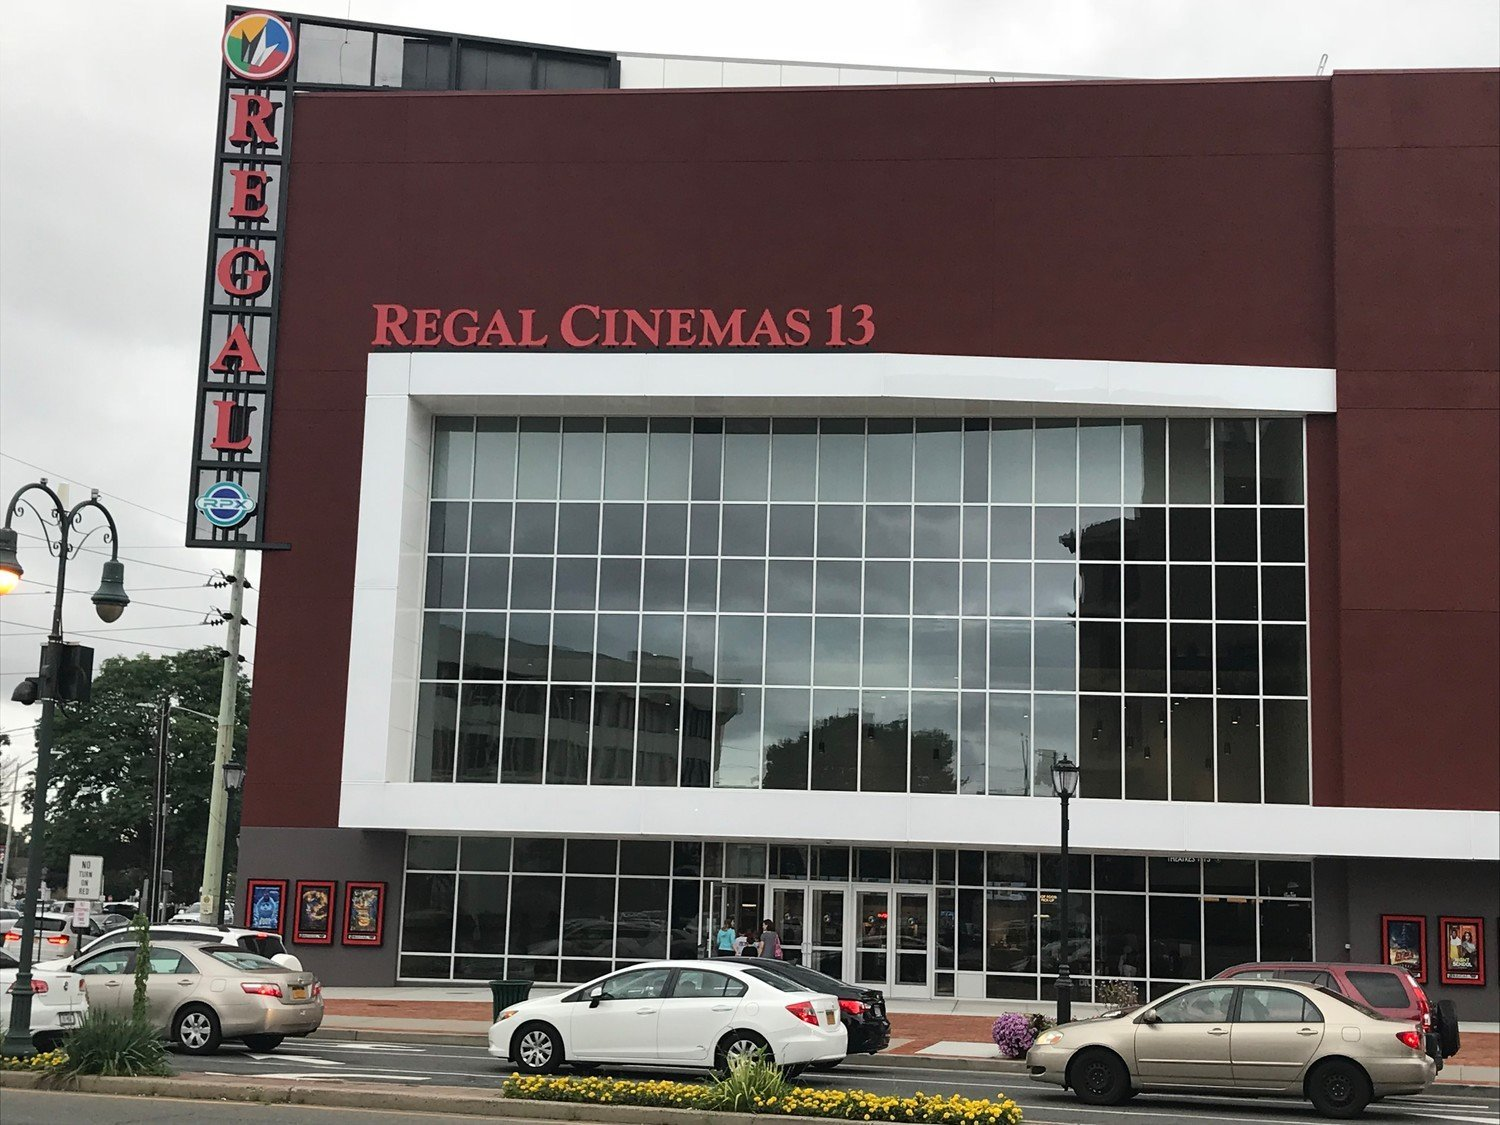 Mayor Alan Beach said he was excited that Regal Cinemas 13 reopened last Friday, and village board members said they hoped to bring back outdoor dining in the near future to help local restaurants.